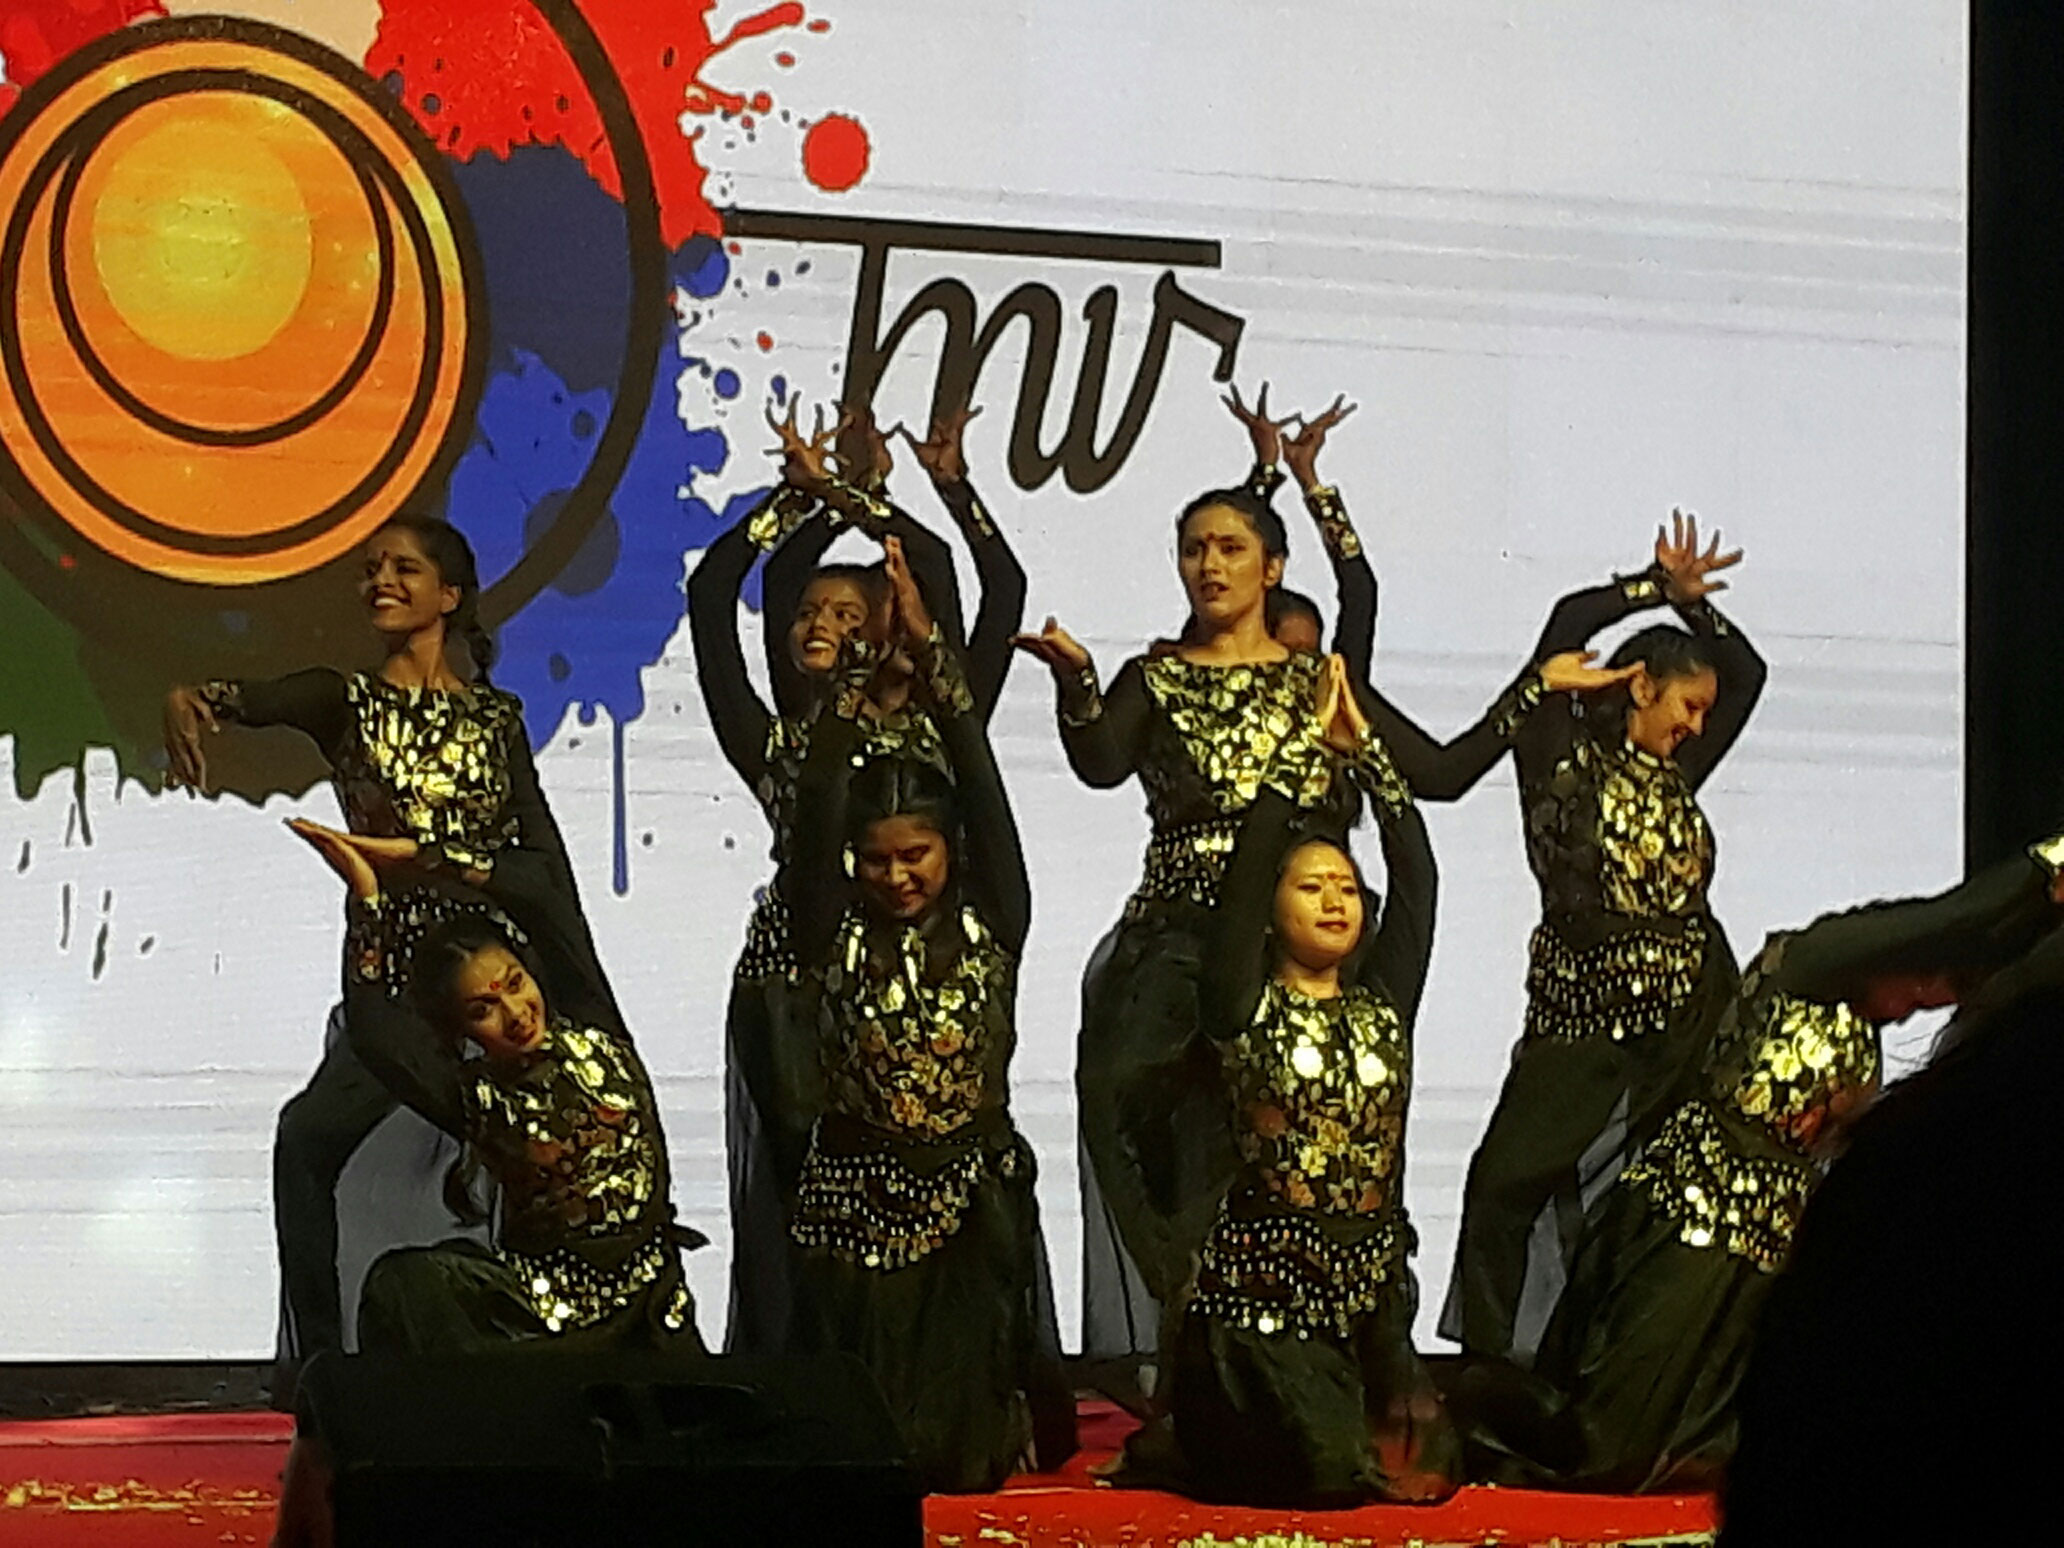 Group Dance by students, Chennai